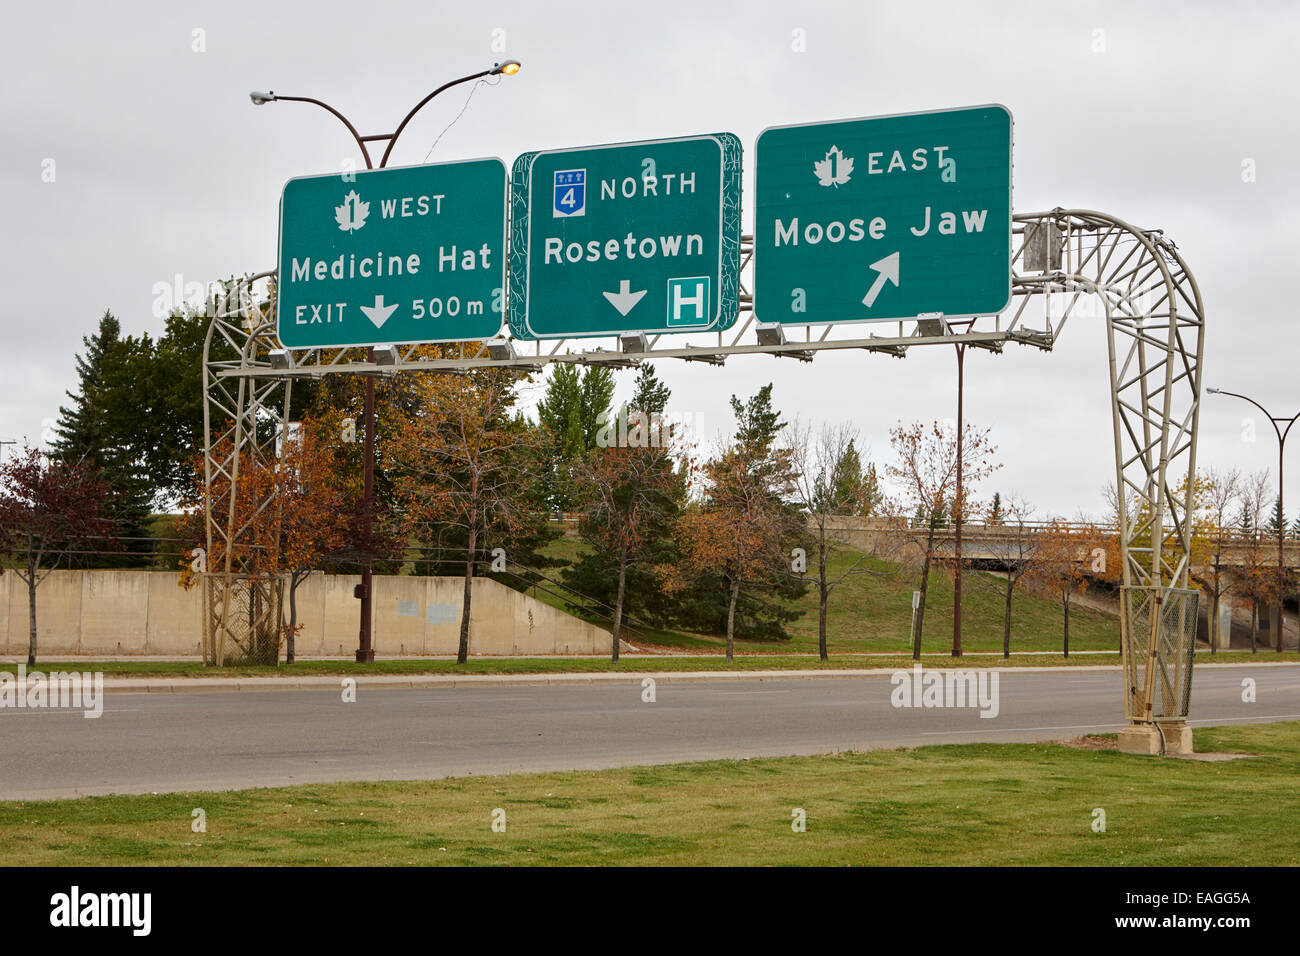 highway 1 intersection directions swift current Saskatchewan Canada - Stock Image